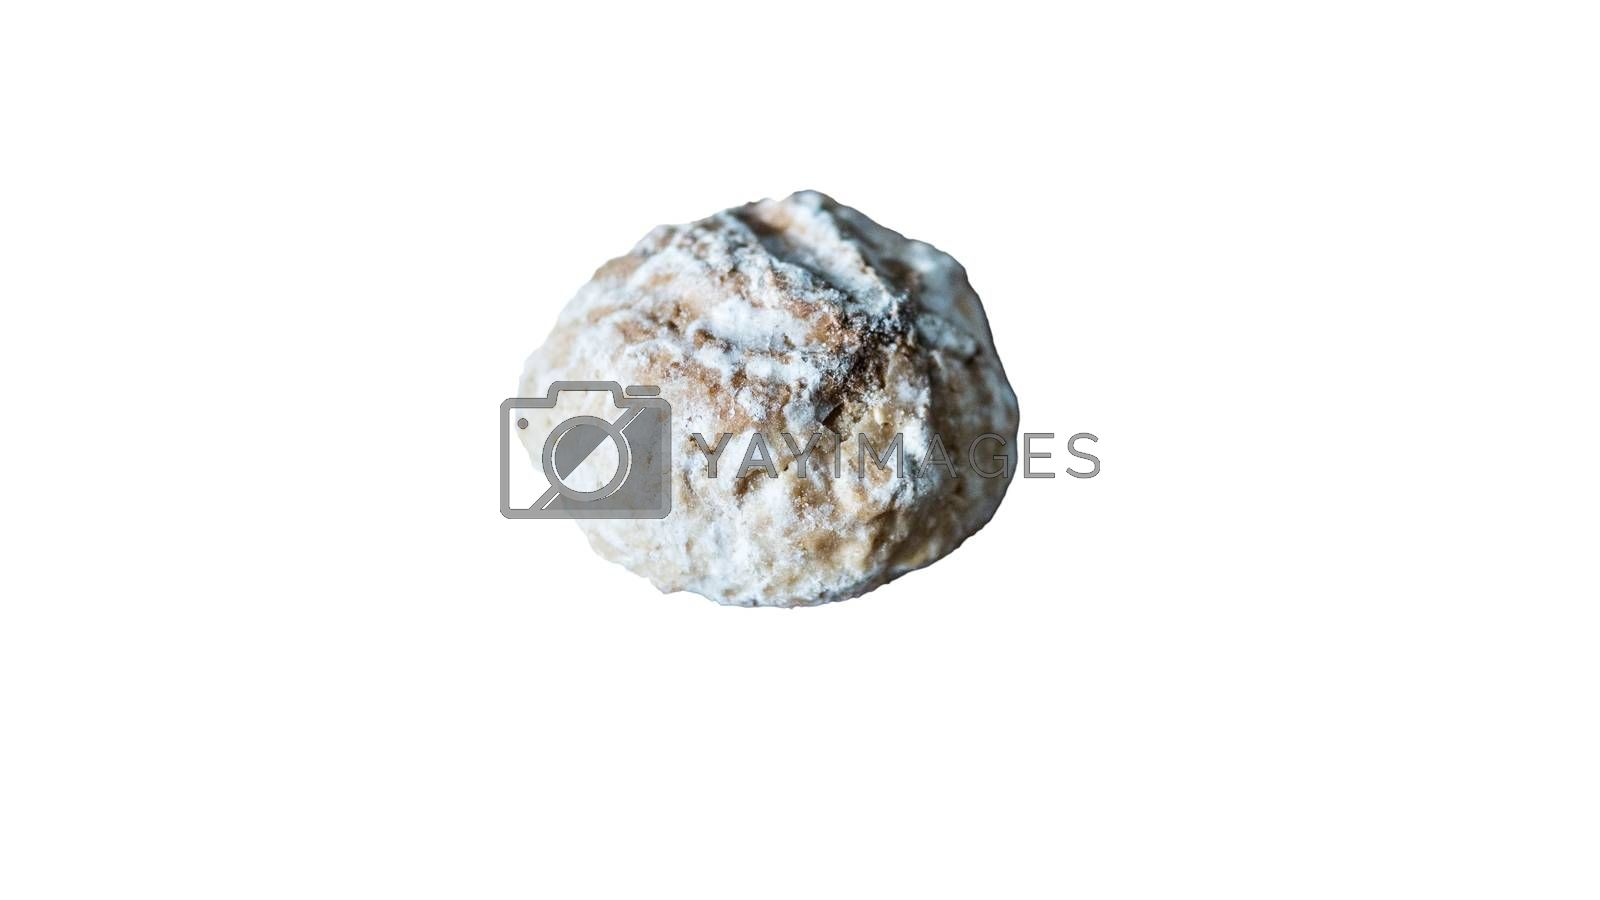 Royalty free image of Cookies,baked goods isolated on a white background. by Andriii_Klapkoo